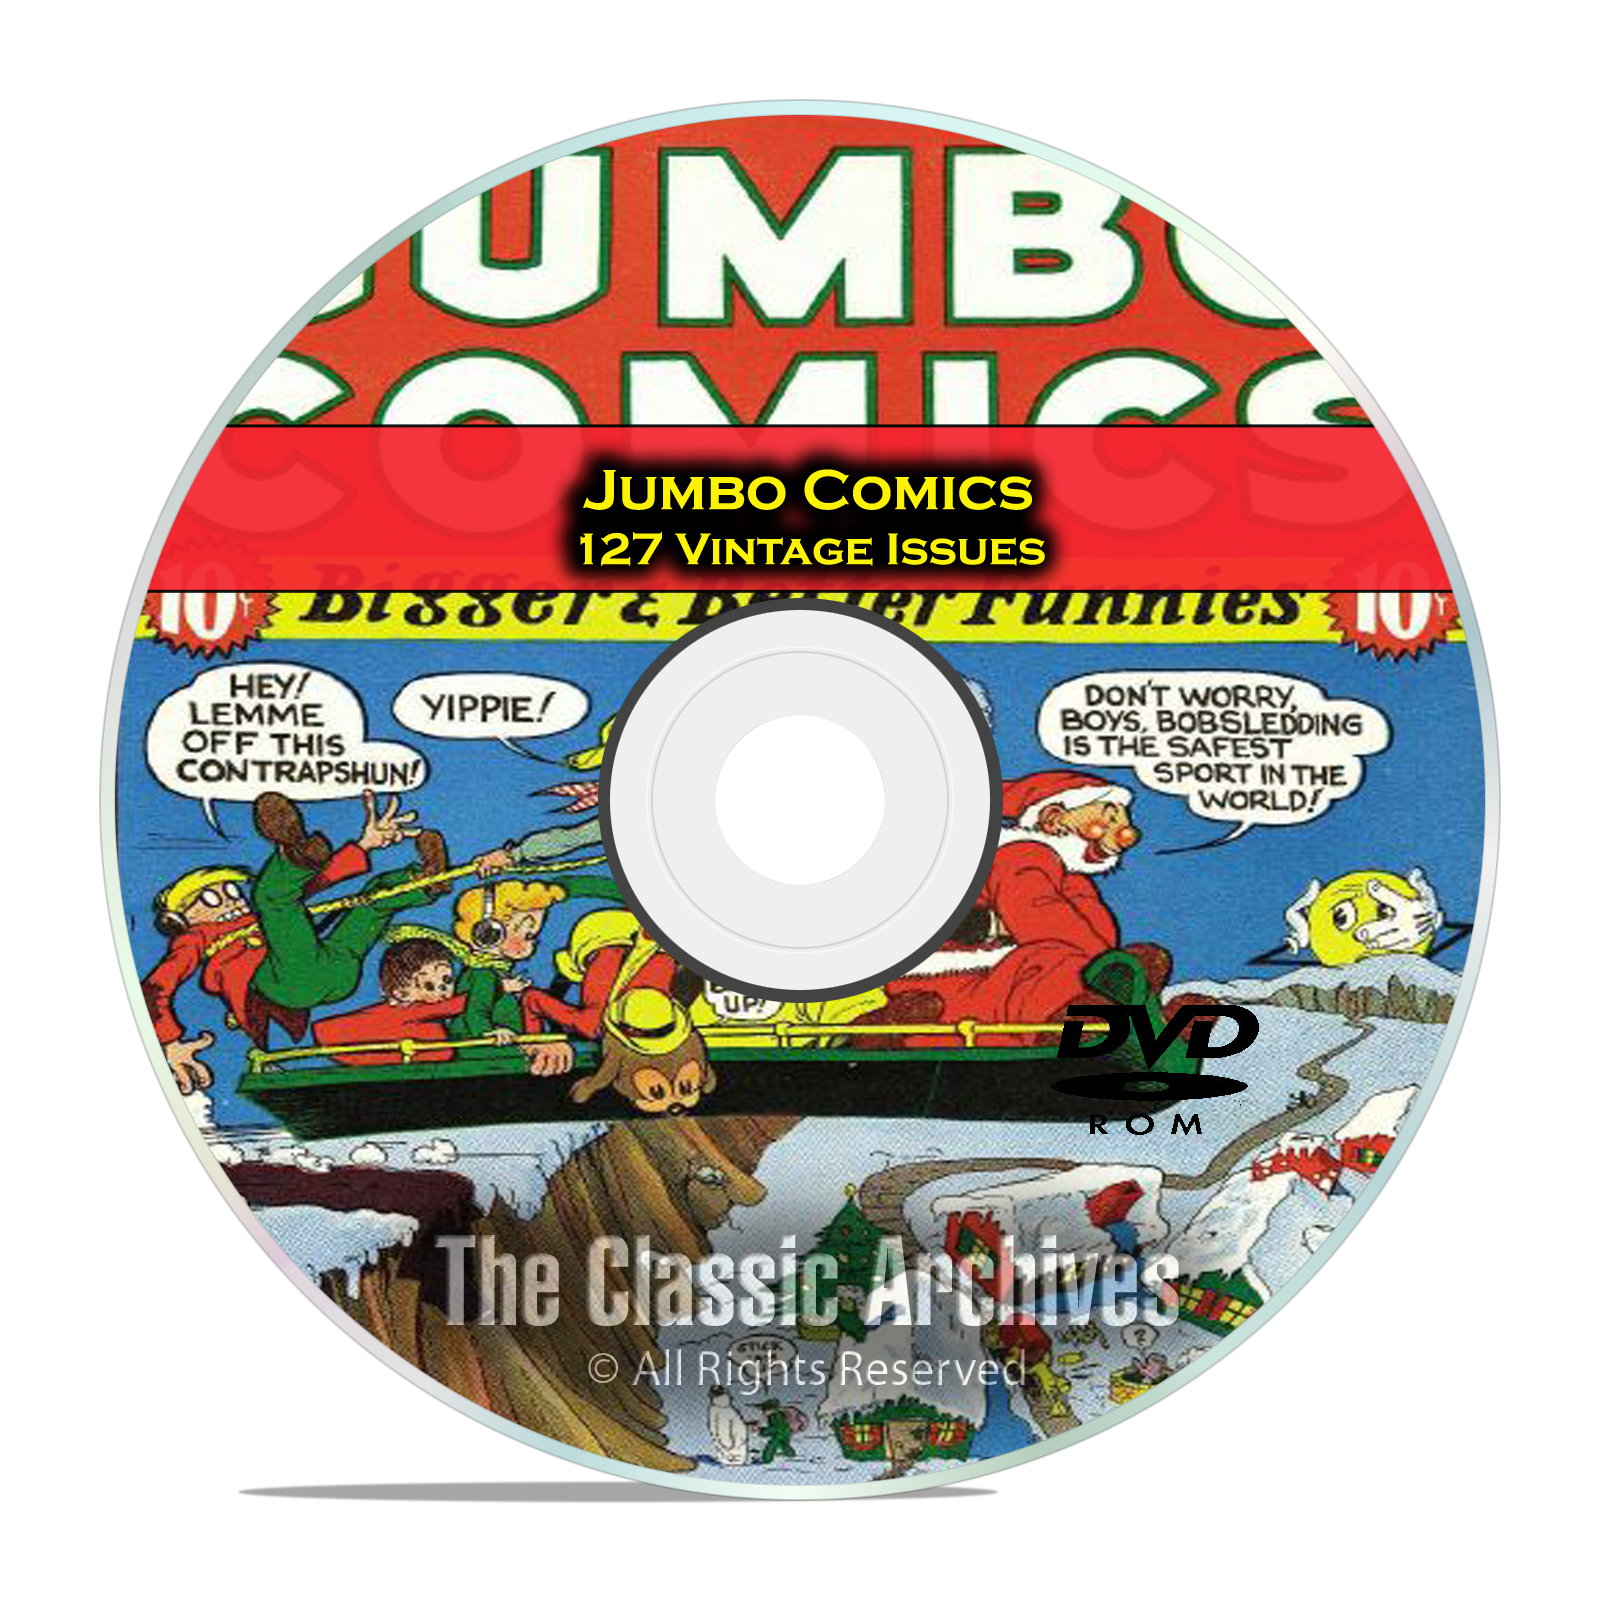 Jumbo Comics, Fiction House, 127 Issues, Vintage Golden Age Comics PDF DVD - Click Image to Close